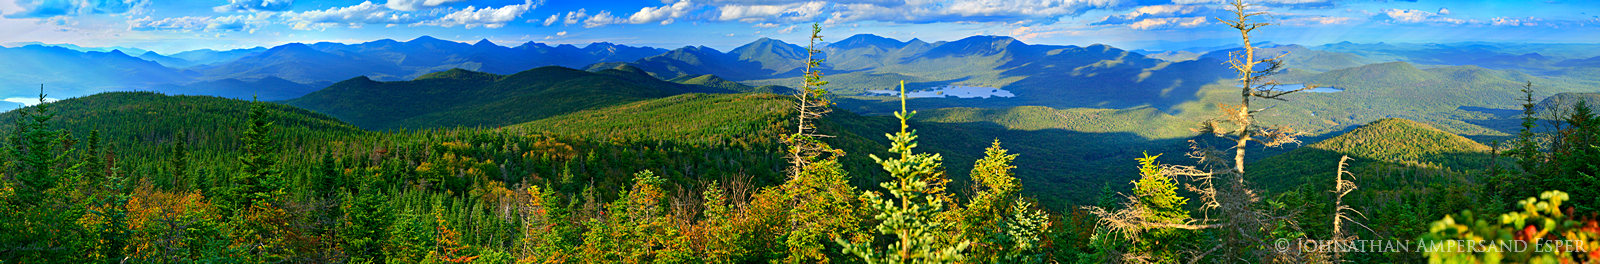 Boreas Mt,Boreas Mountain,panorama,Elk Lake,region,area,High peaks,south,view,from,treetop,spurce,tree,Adirondack Mountains,Elk Lake Preserve, photo